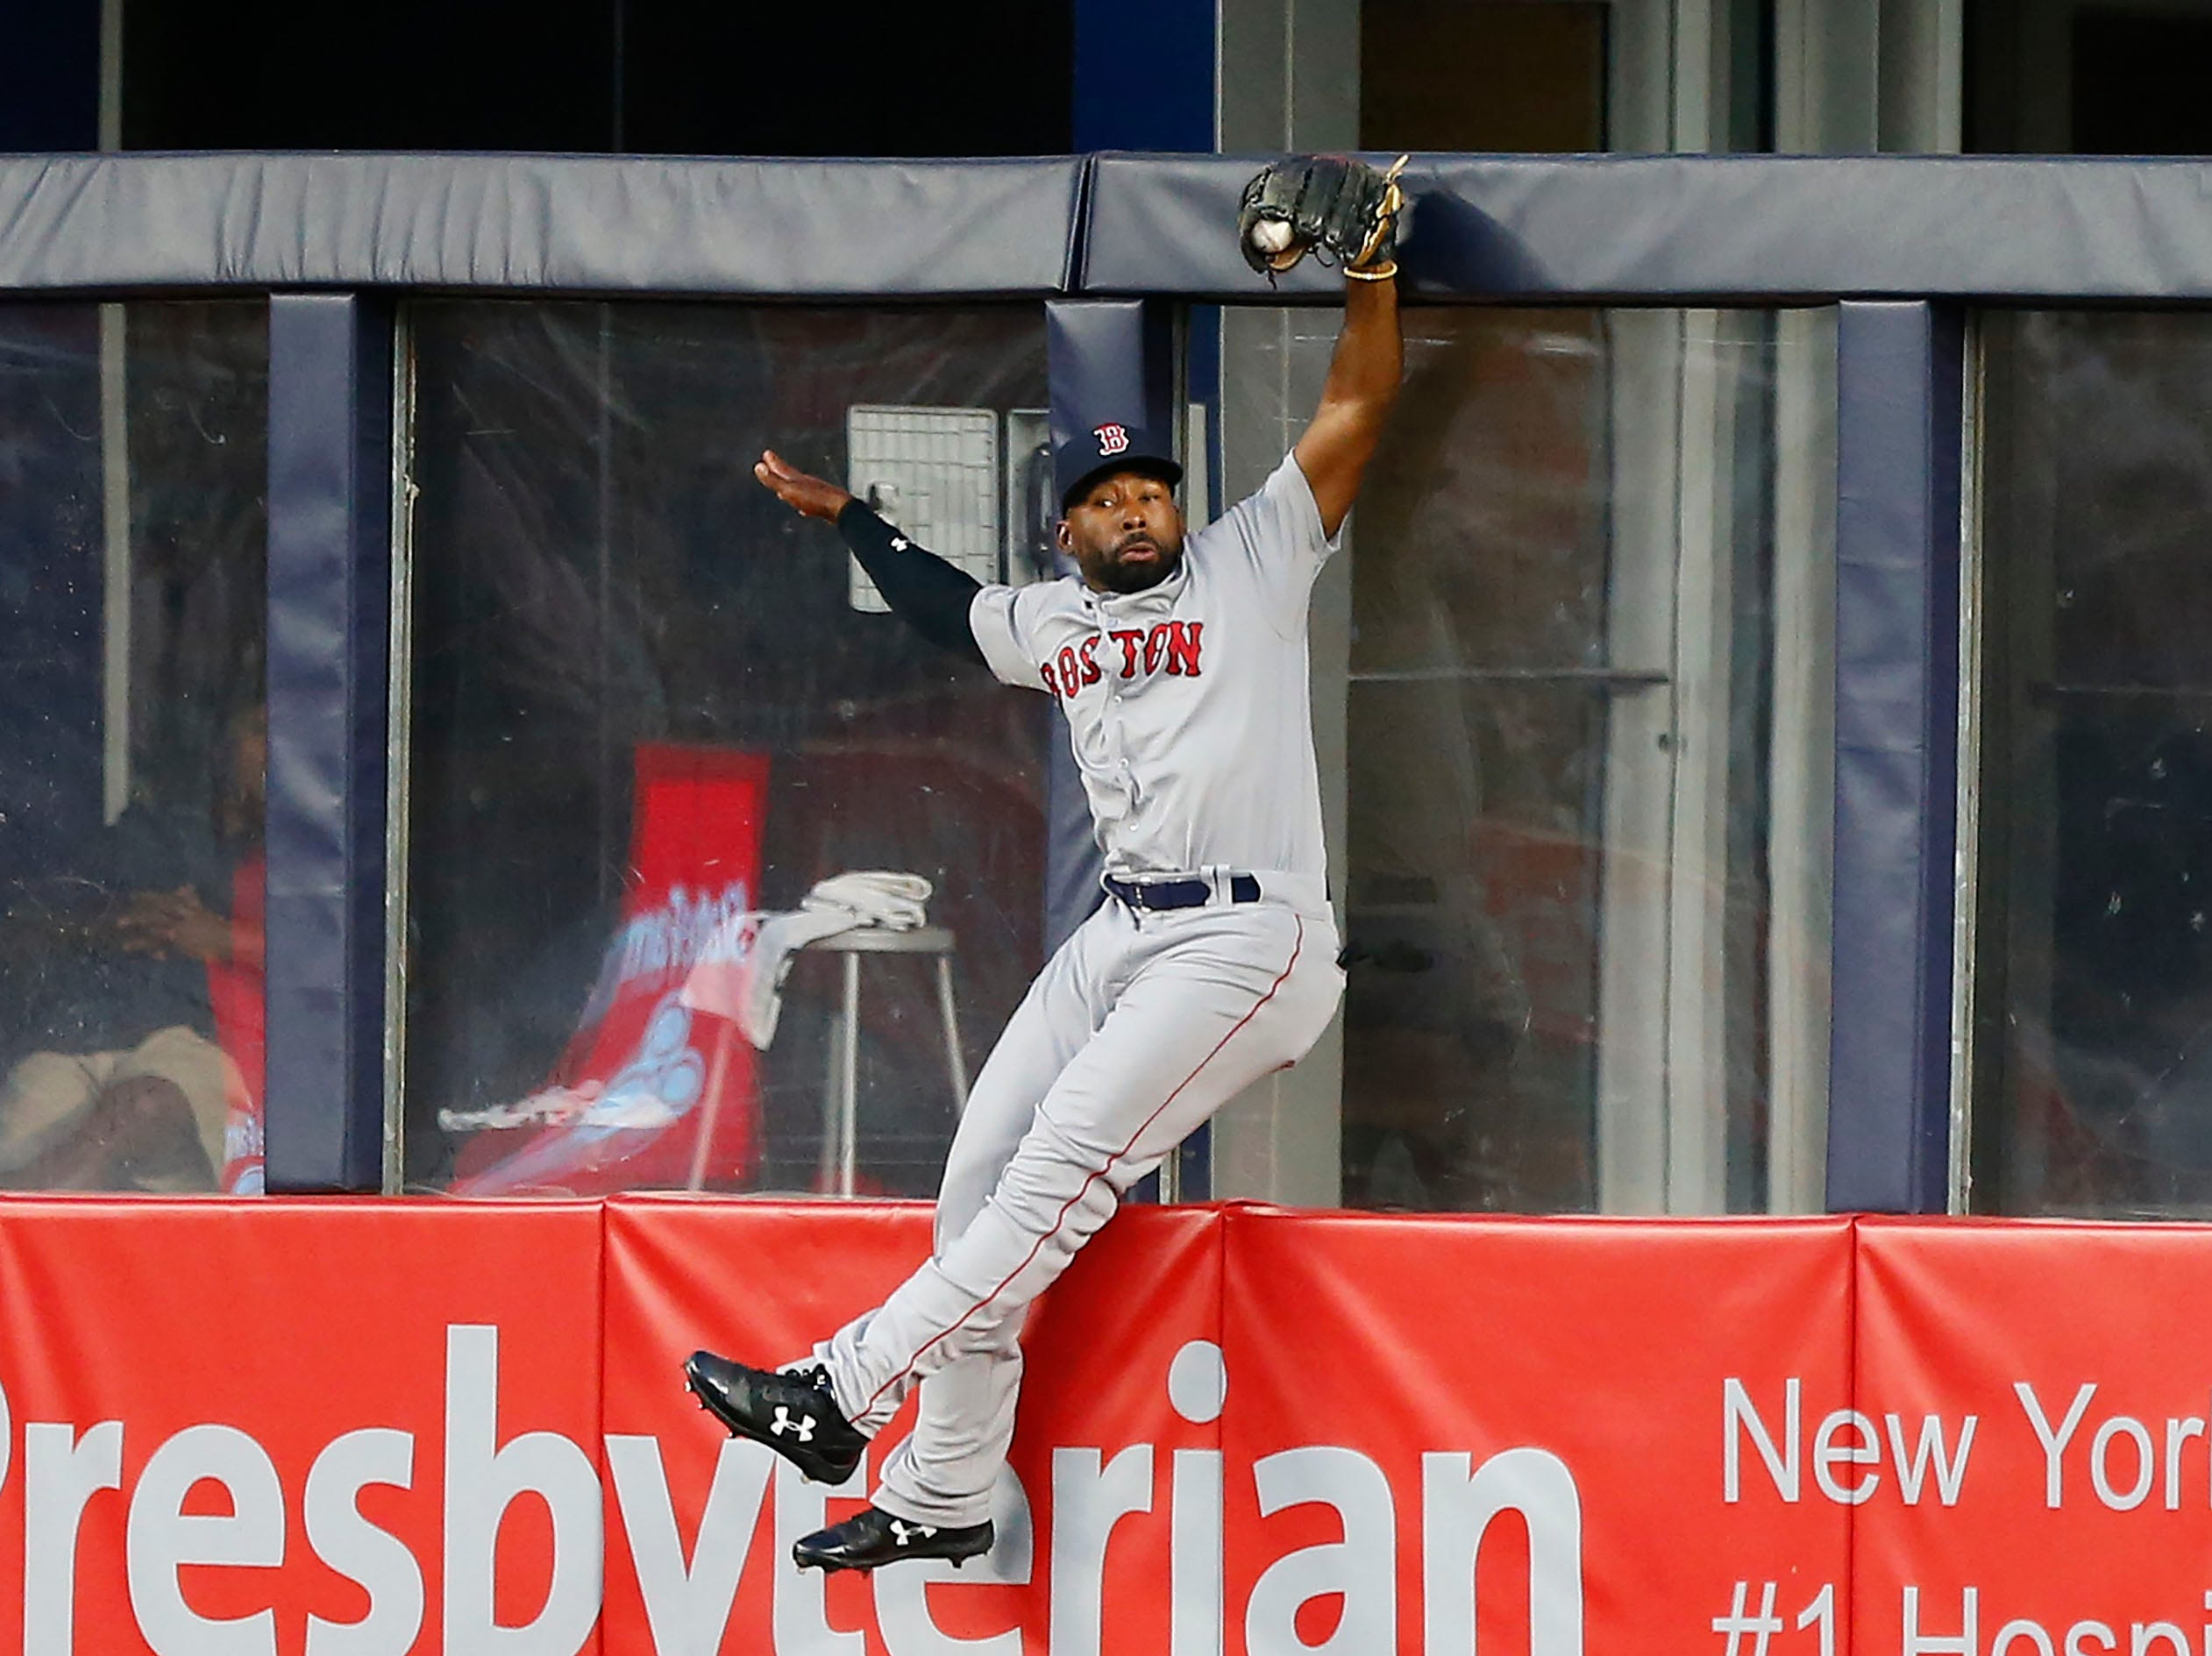 June 30: Boston Red Sox center fielder Jackie Bradley Jr. catches a ball hit by New York Yankees center fielder Aaron Hicks for an out in the third inning at Yankee Stadium.